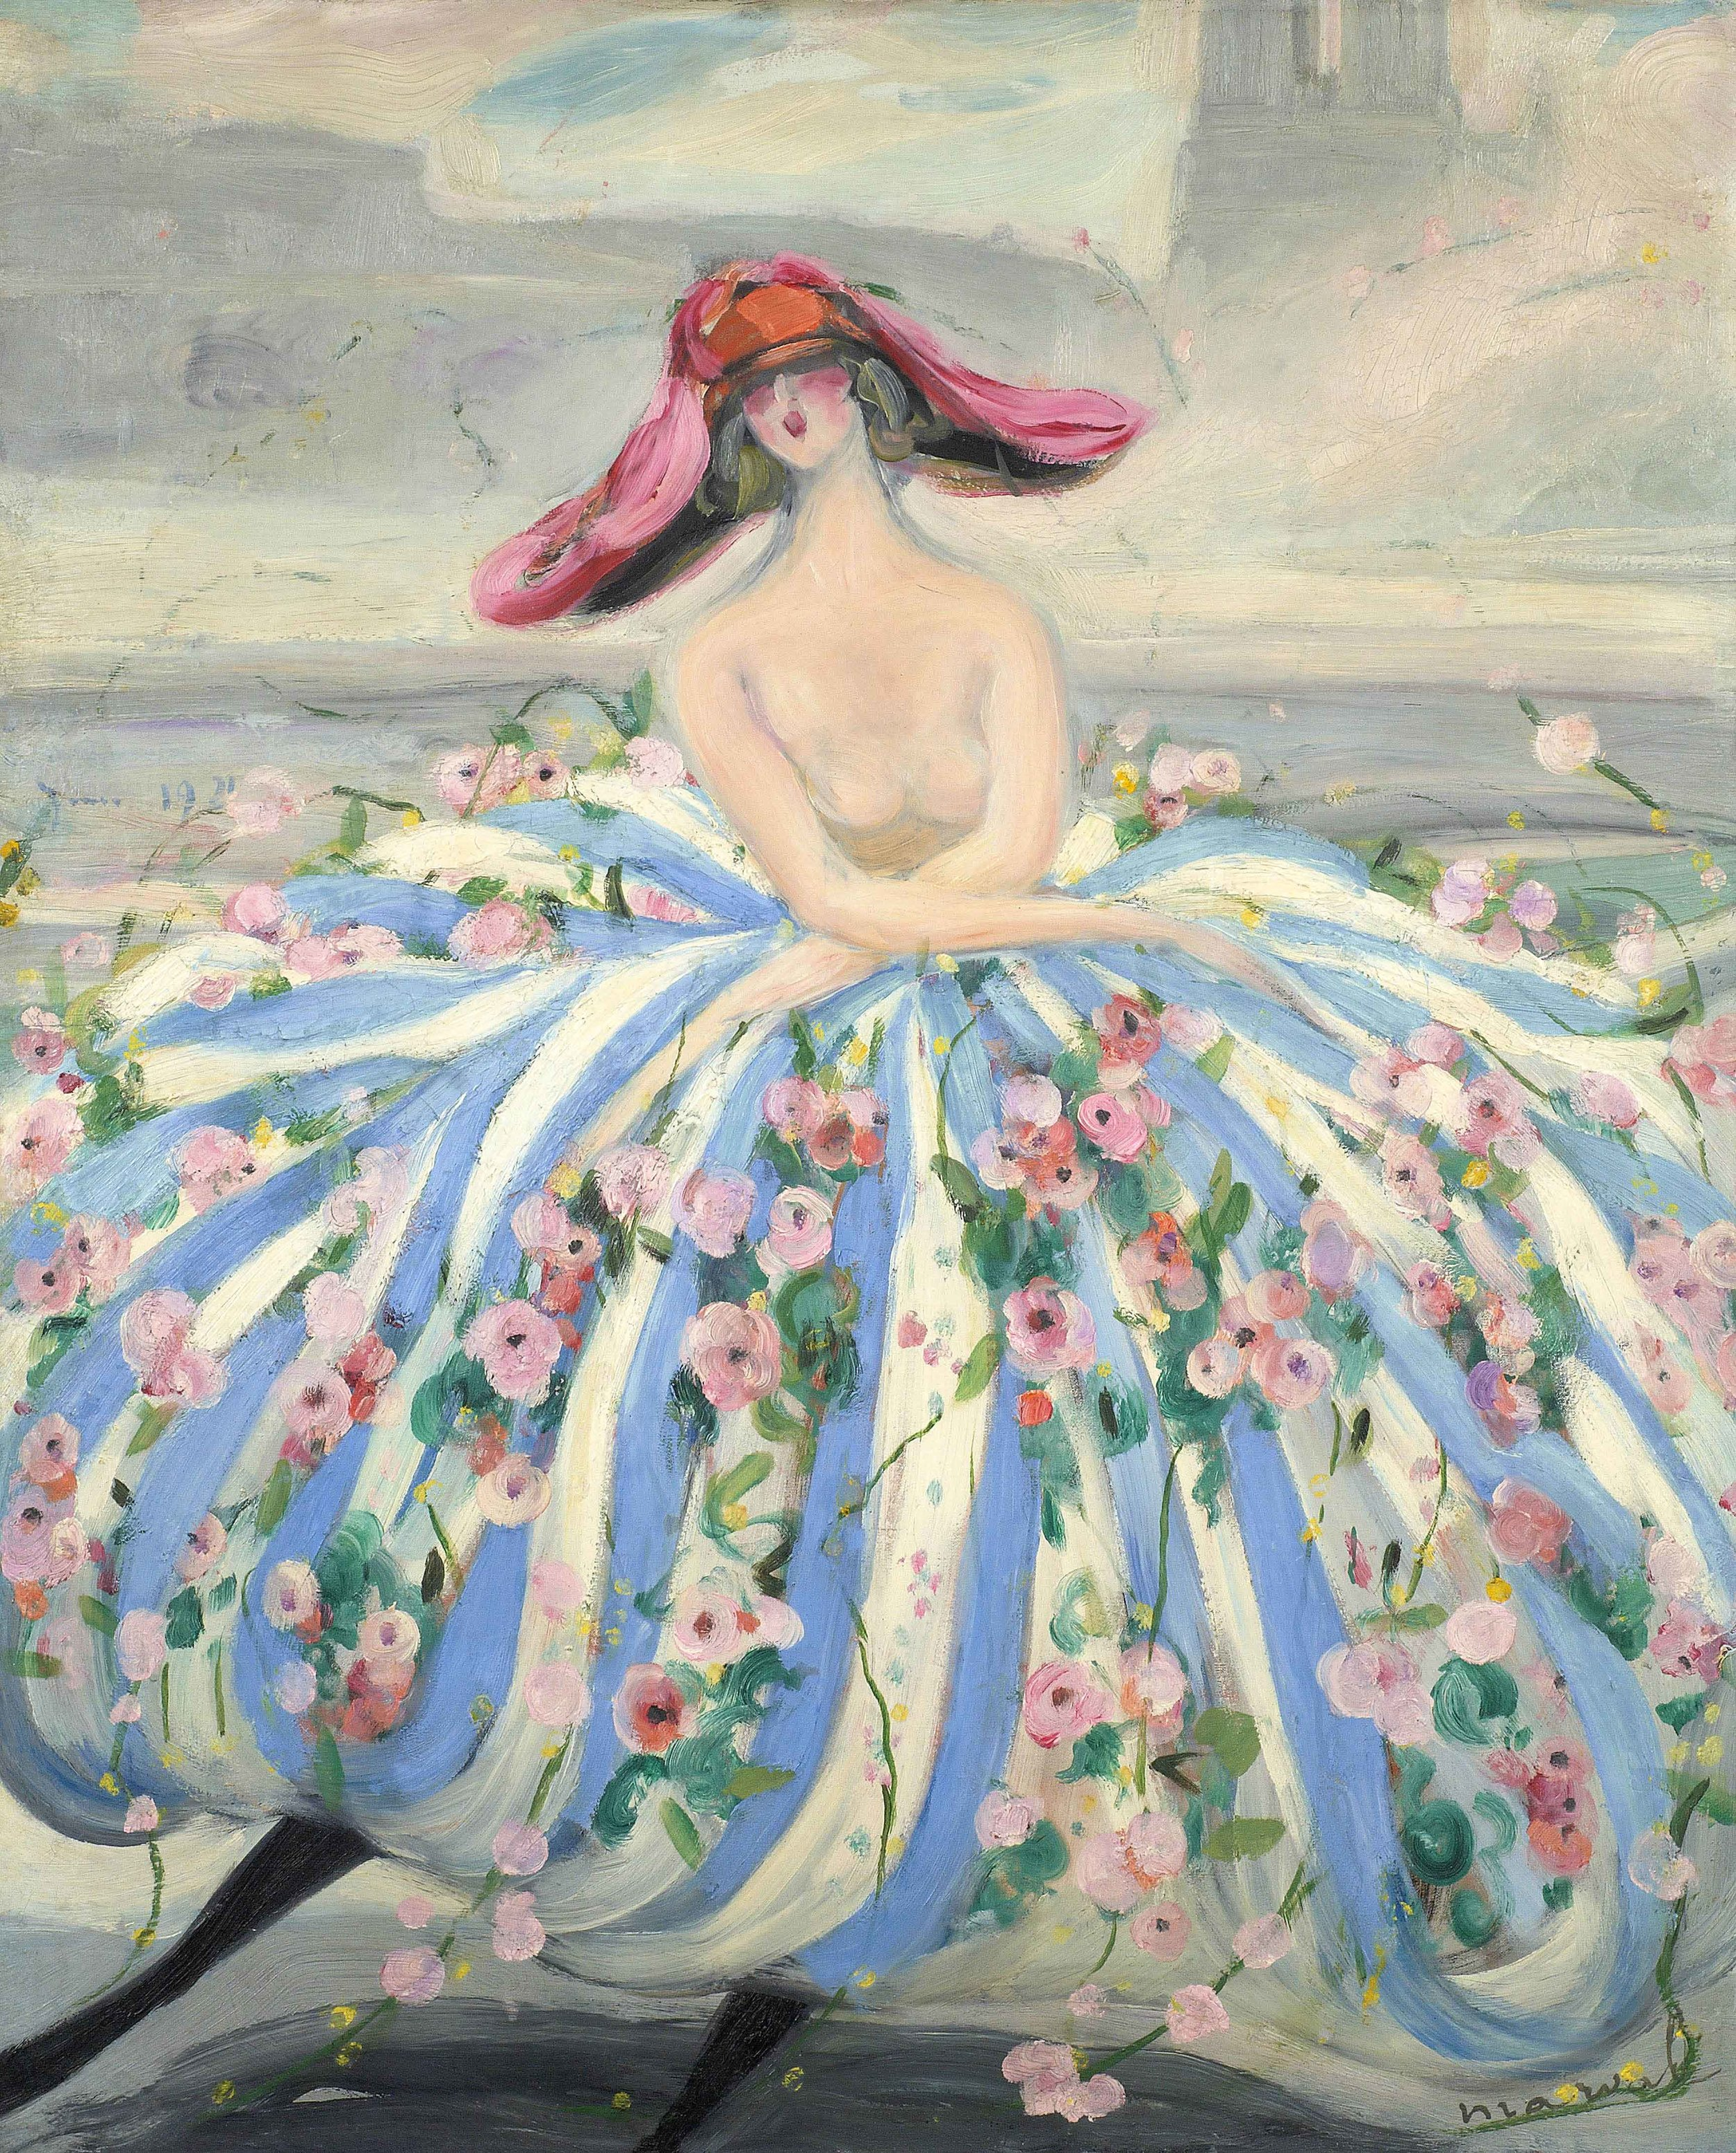 La Danseuse de Notre-Dame, Jacqueline Marval, 1921. Oil on canvas, 100 x 81 cm. Private collection, Paris.